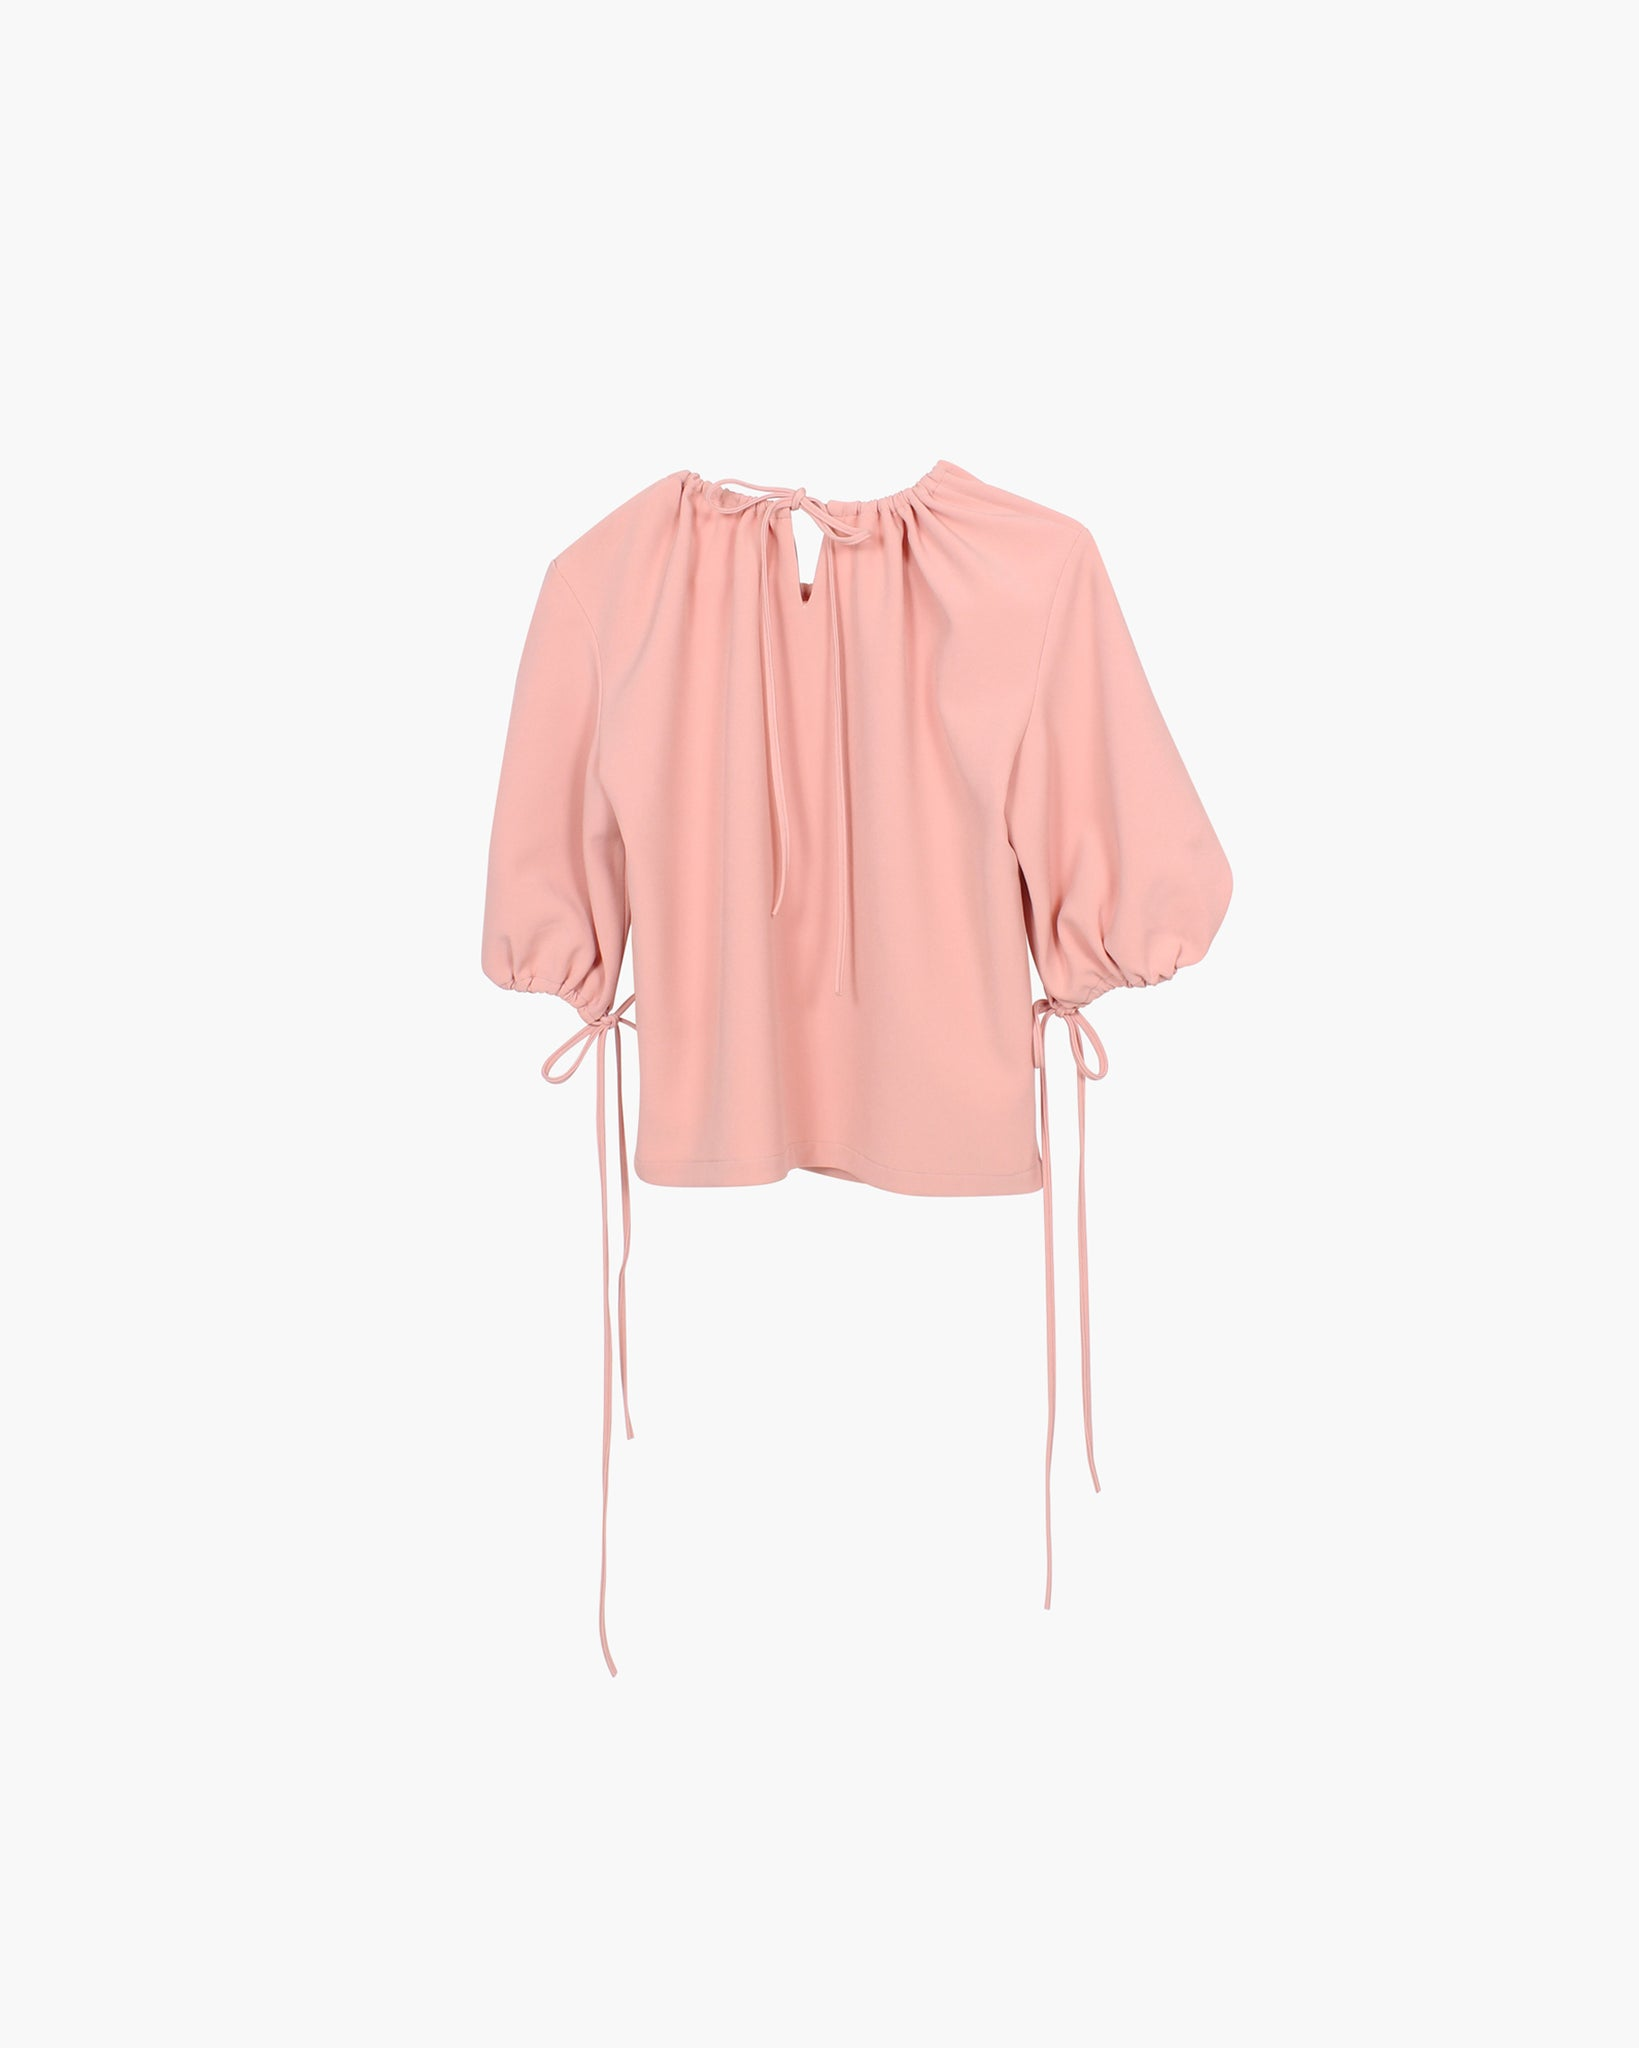 Sofie Shirt Blush Crepe